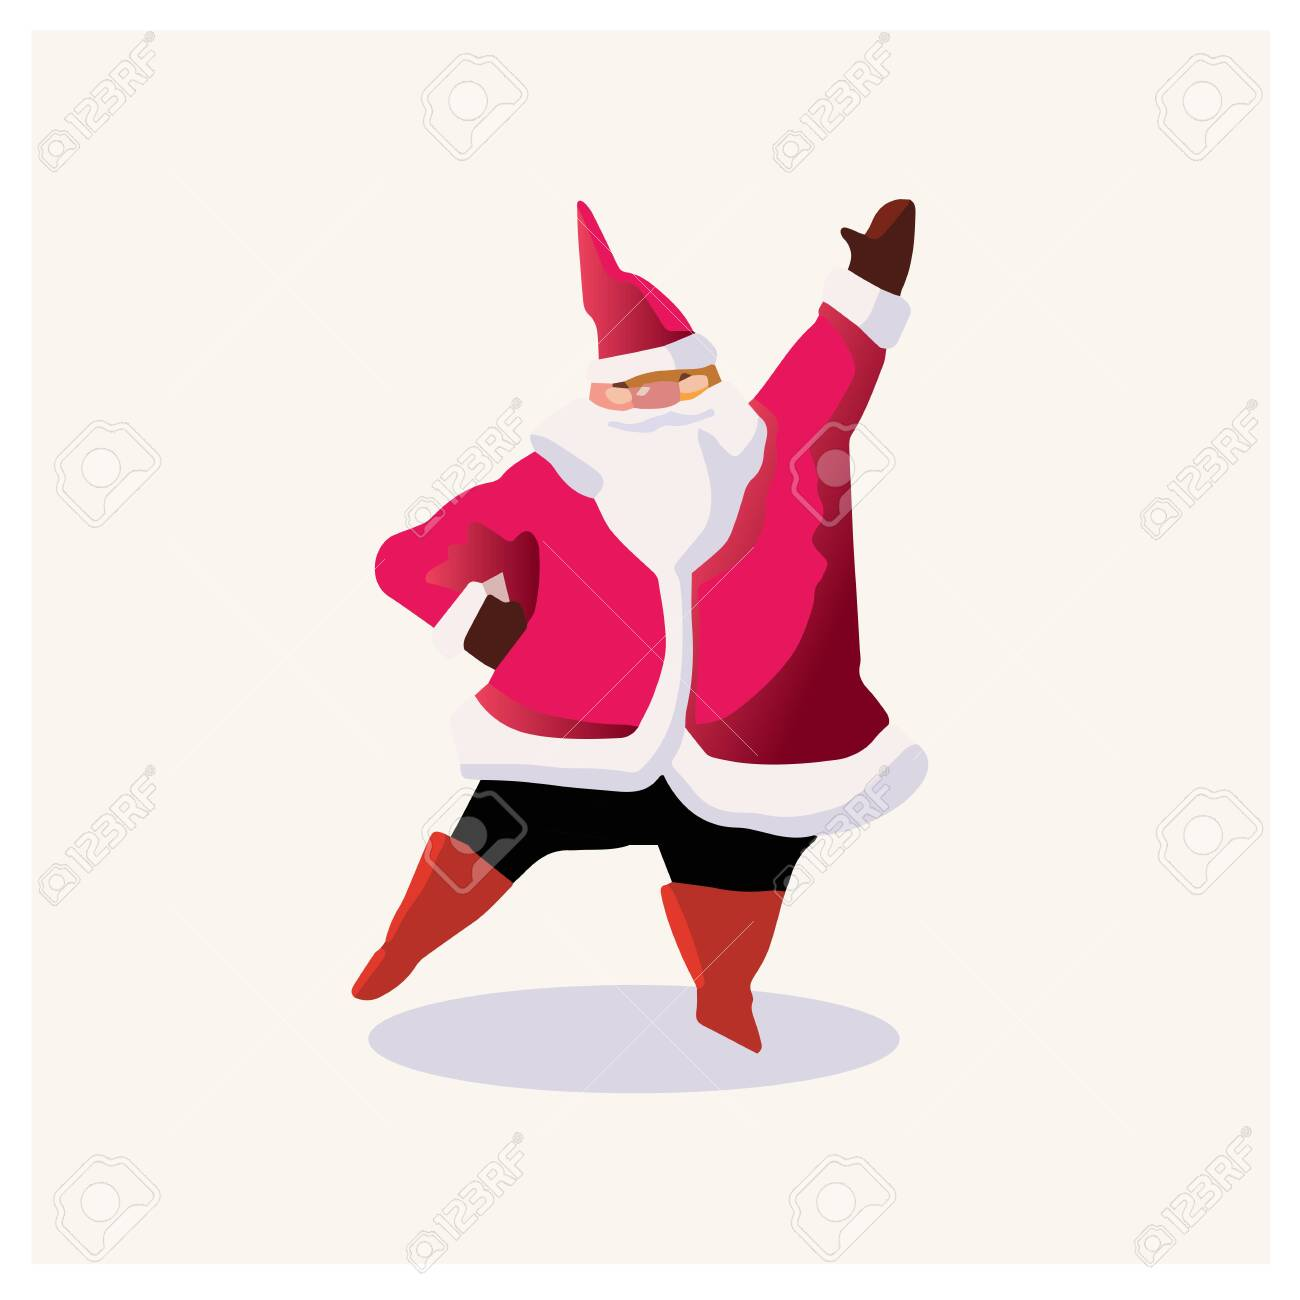 Set of cartoon Christmas illustrations. Funny happy Santa Claus character with gift, bag with presents, waving and greeting. For Christmas cards, banners, tags and labels. - 132718936